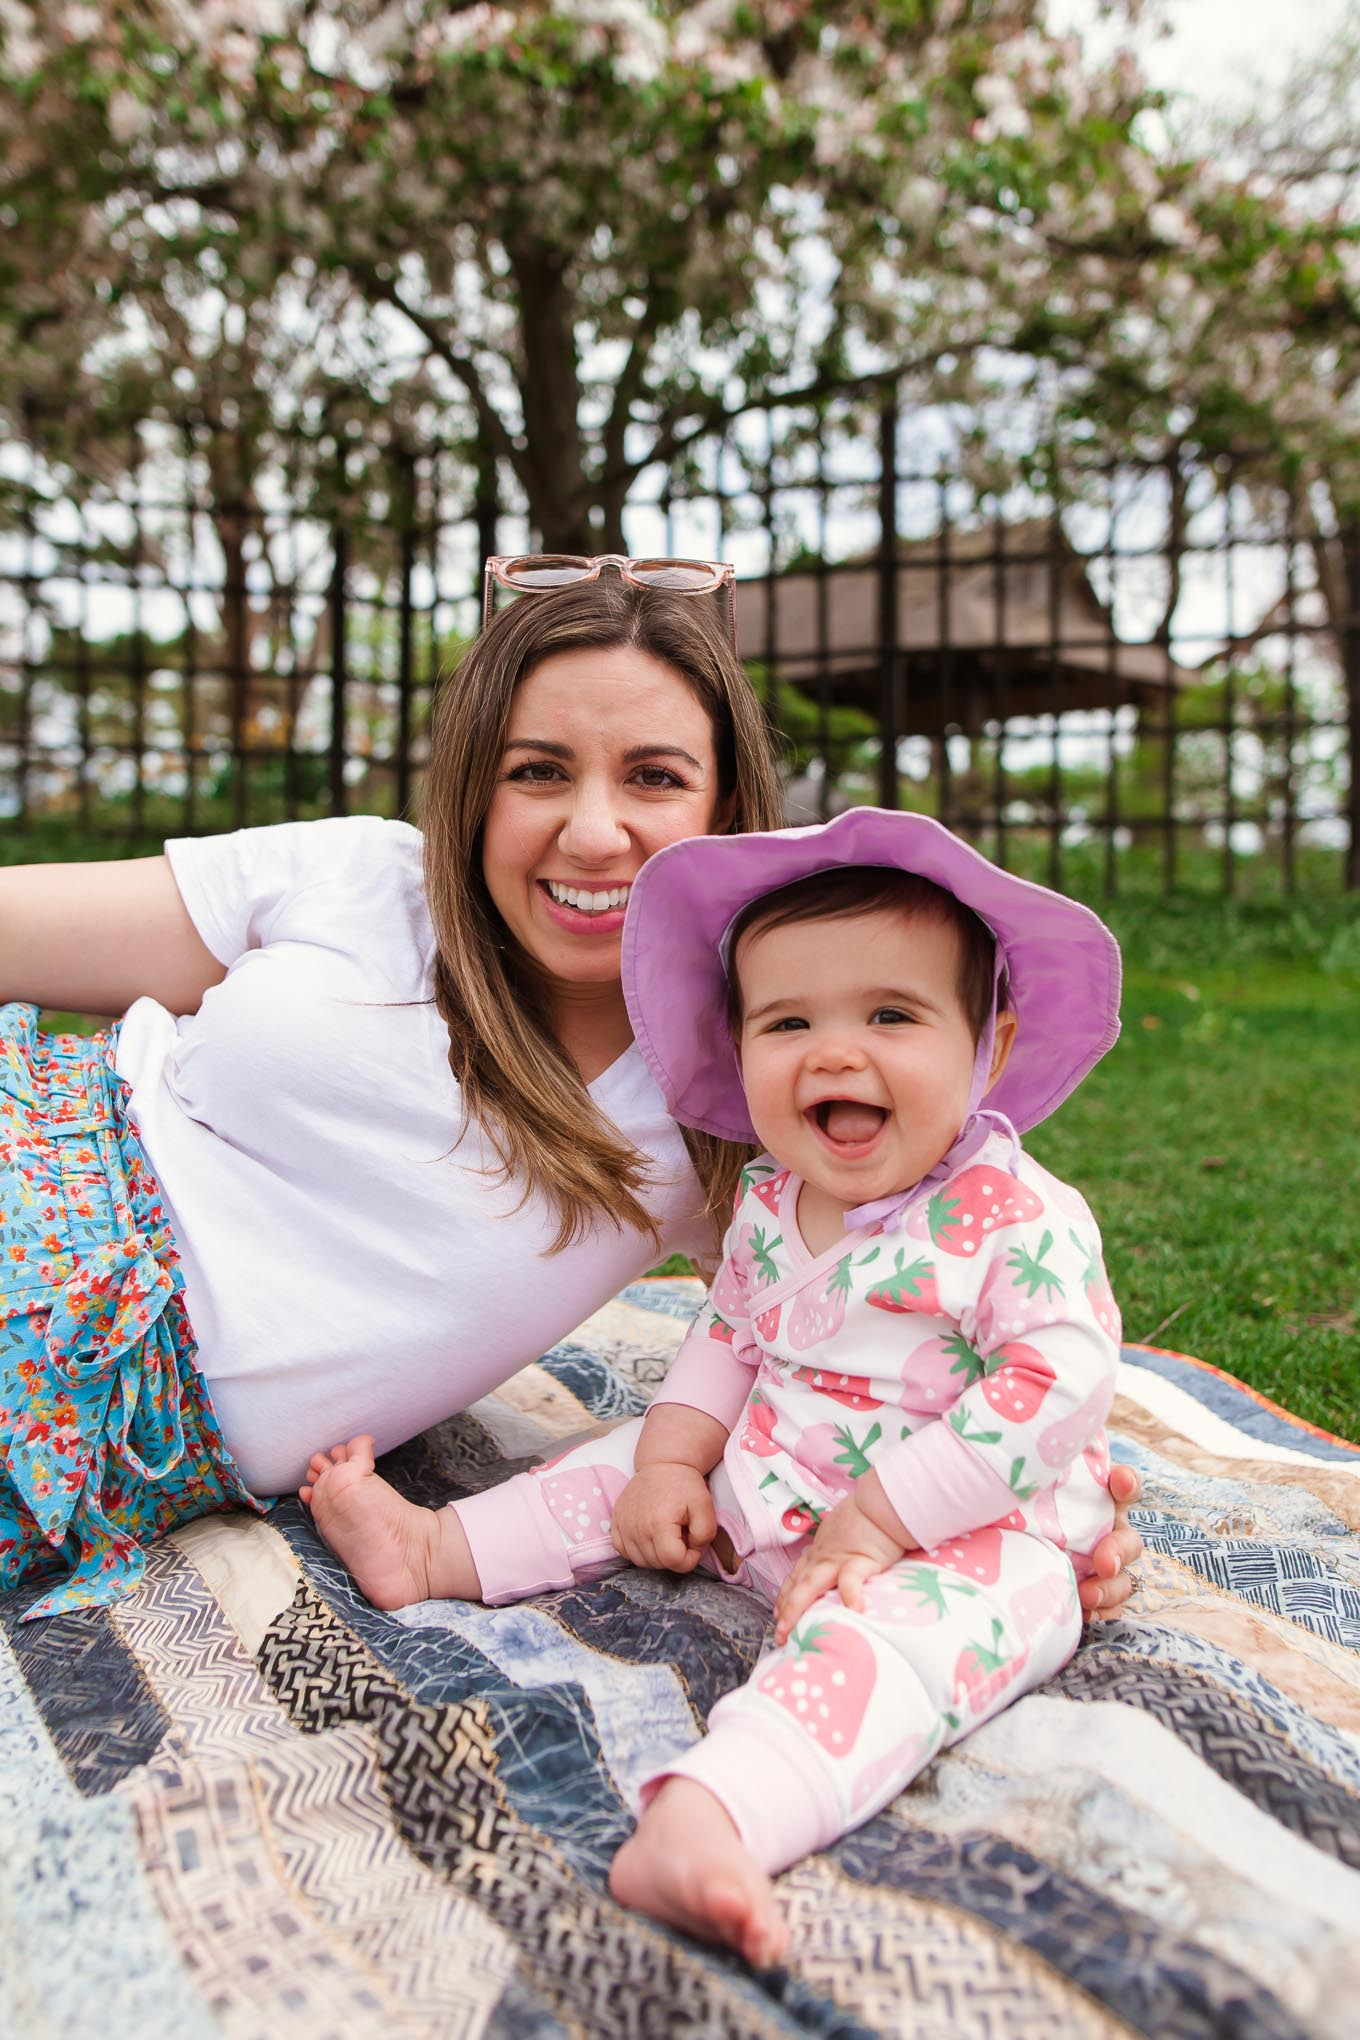 Picnic in the Park by popular Chicago lifestyle blog, Glass of Glam: image of a woman wearing Loft FLORAL TIE WAIST CARGO SHORTS, J. Crew V-neck cotton tee, SheIn Star Patch Lace Up Splice Sneakers, and WODISON WODISON Womens Retro Mirrored Sunglasses and holding her daughter who is wearing a Monica + Andy Kimono Tie One-Piece and green sprouts i play.® by green sprouts® Brim Sun Hat while laying on a blanket at the park.